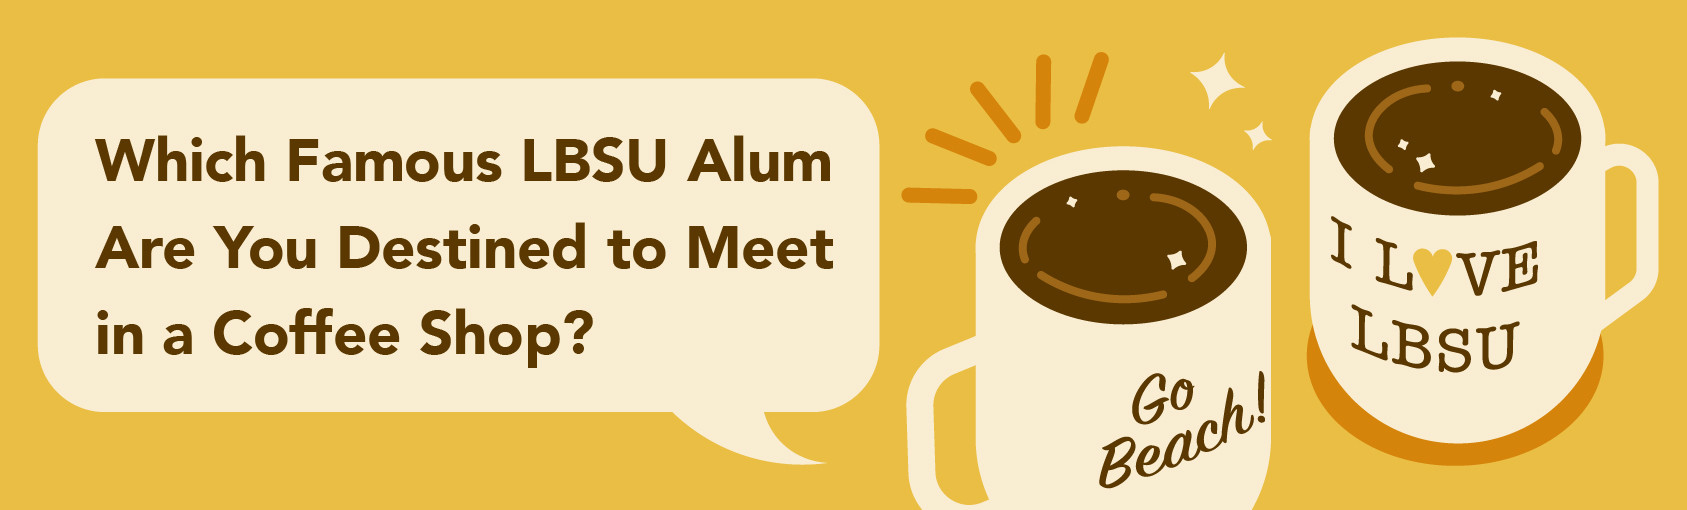 Quiz: Which Famous LBSU Alum Are You Destined to Meet in a Coffee Shop? banner